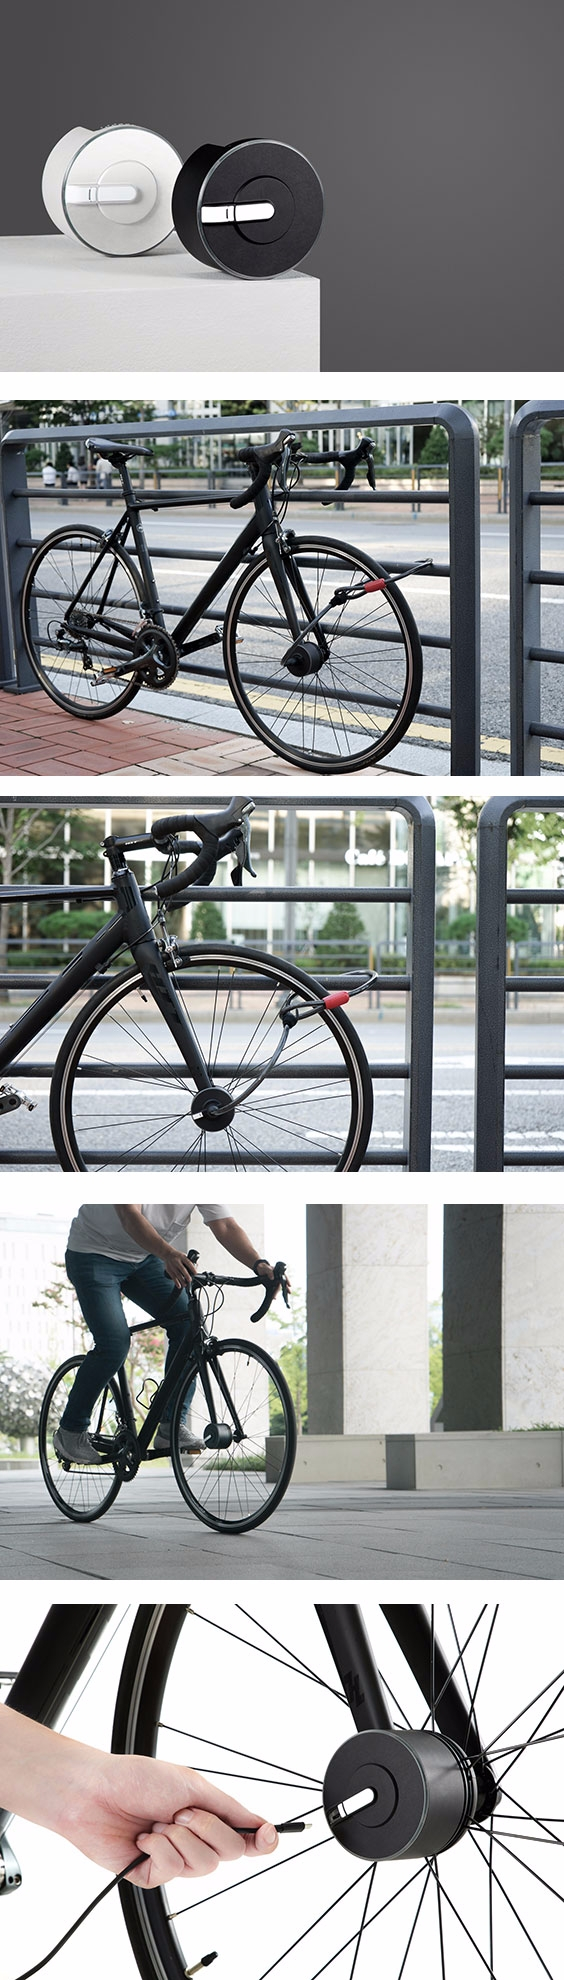 Bisecu smart bike lock brings l - adaptnetwork | ello